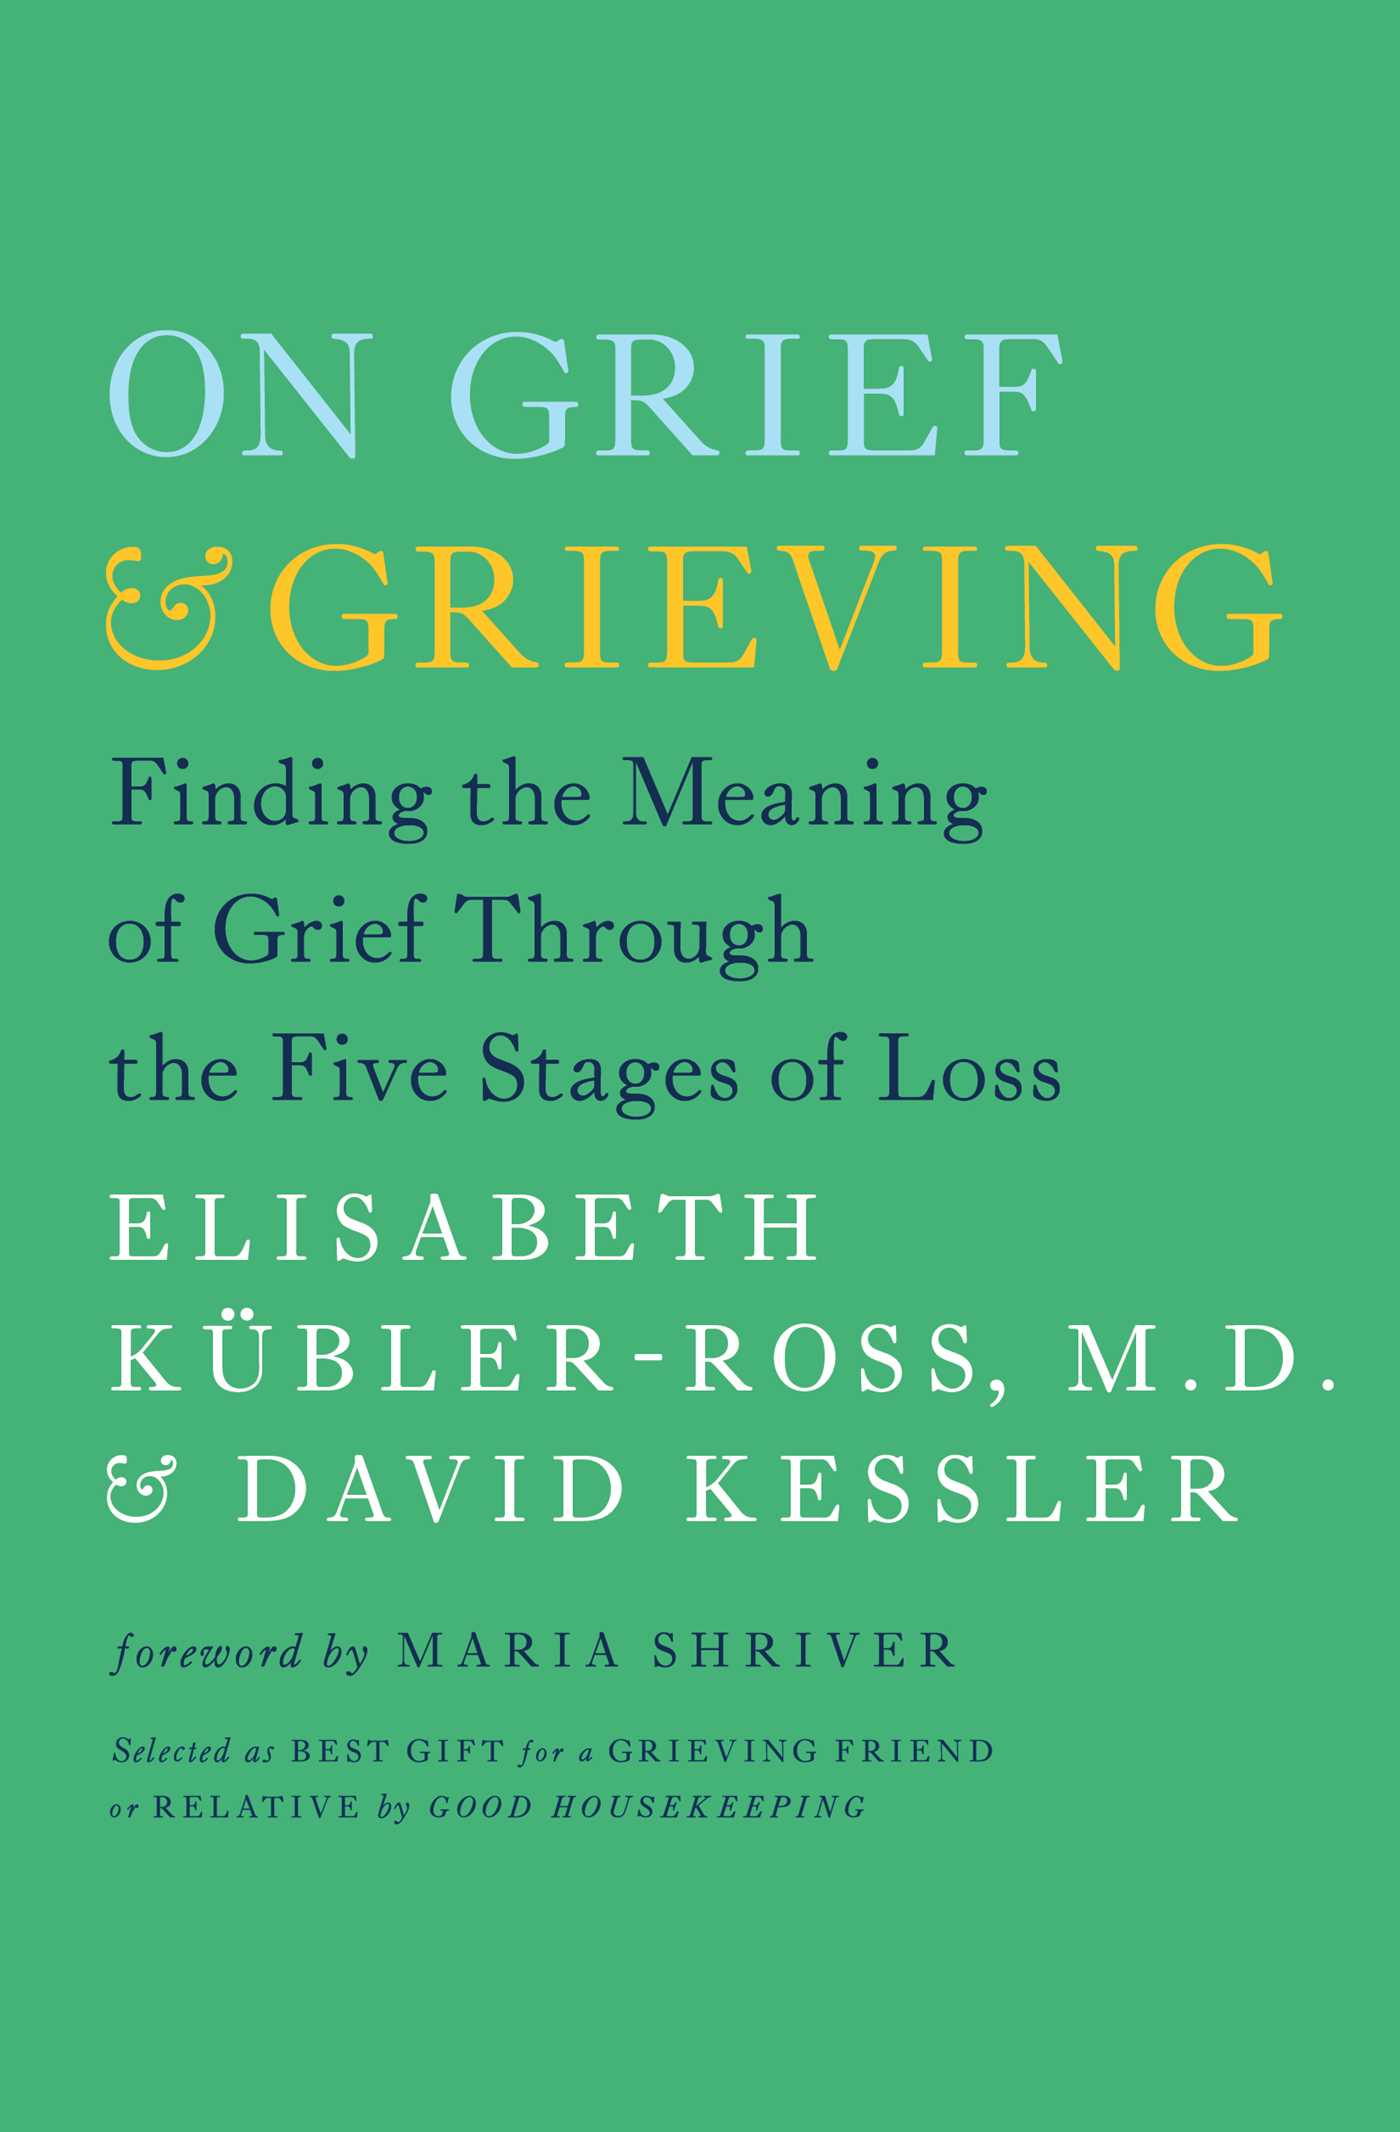 elisabeth kubler ross death and dying grieving process of a relationship